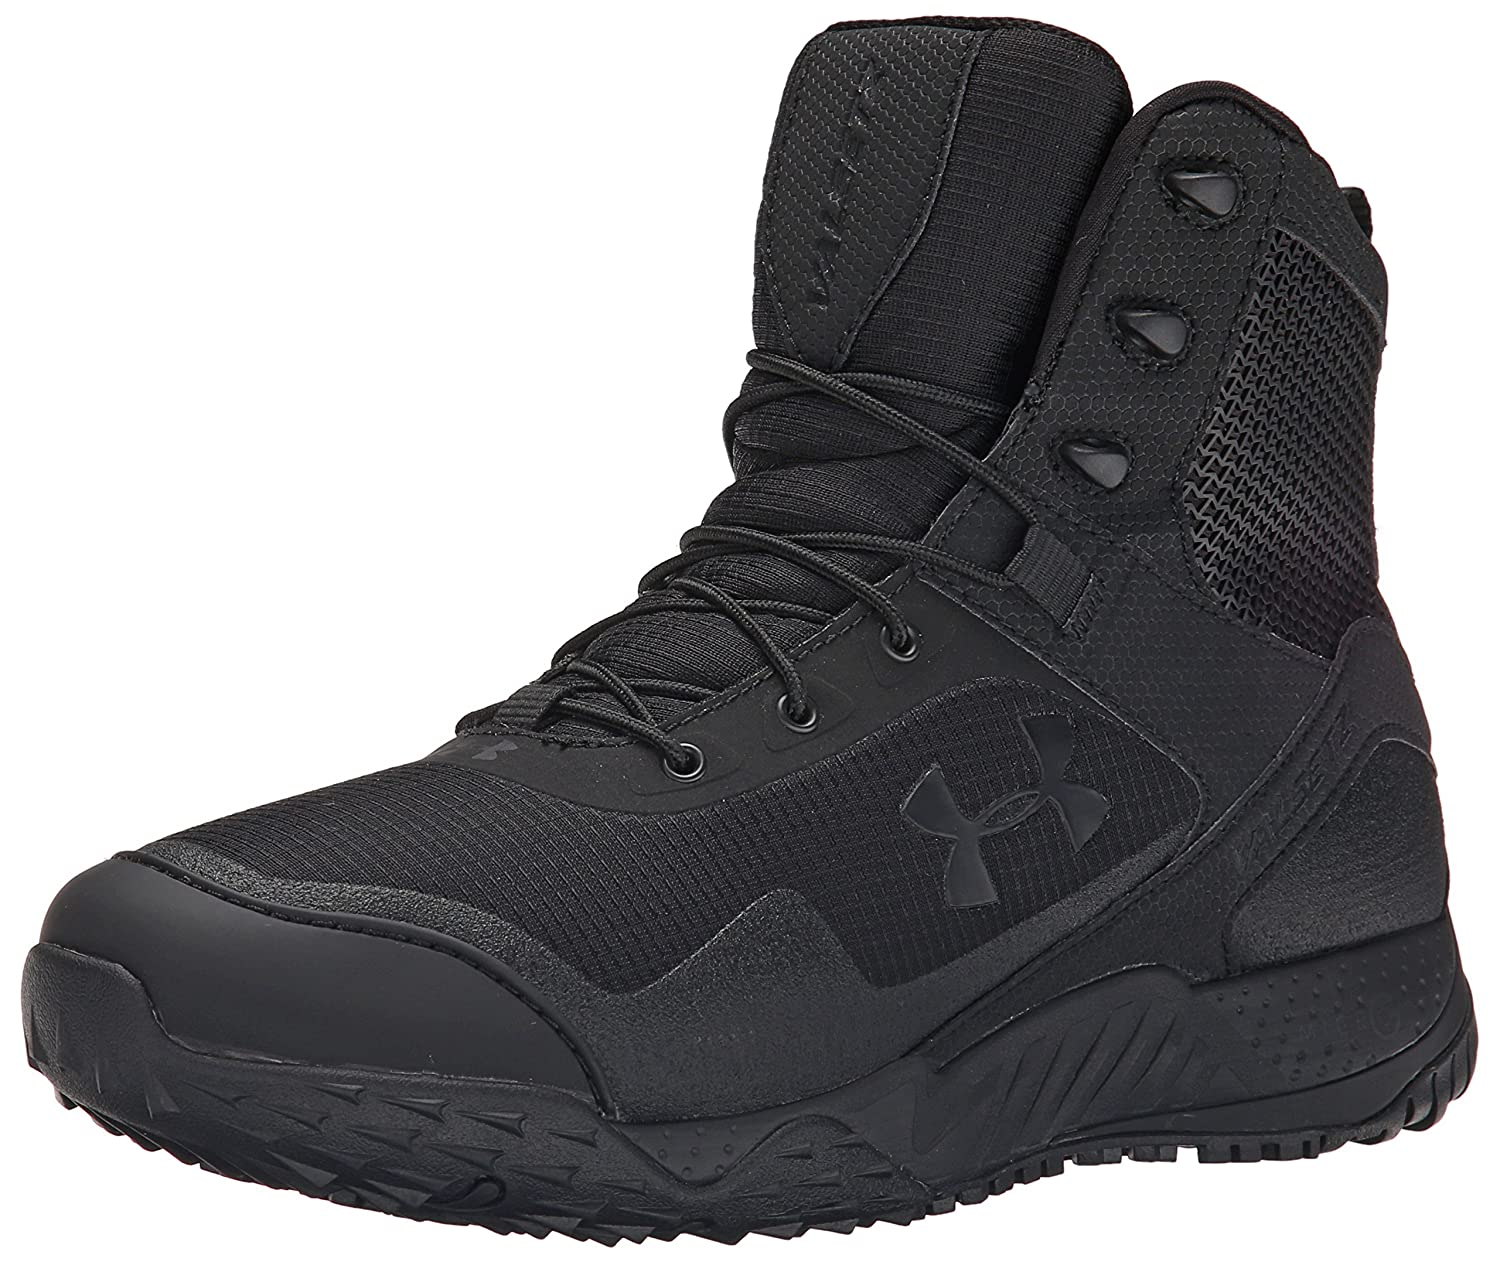 (アンダーアーマー) UNDER ARMOUR タクティカルブーツ UA Valsetz RTS Side-Zip Tactical Men's Tactical Boots 1257847 1 28.0 cm 28.0 cm001 B00SADVHD8